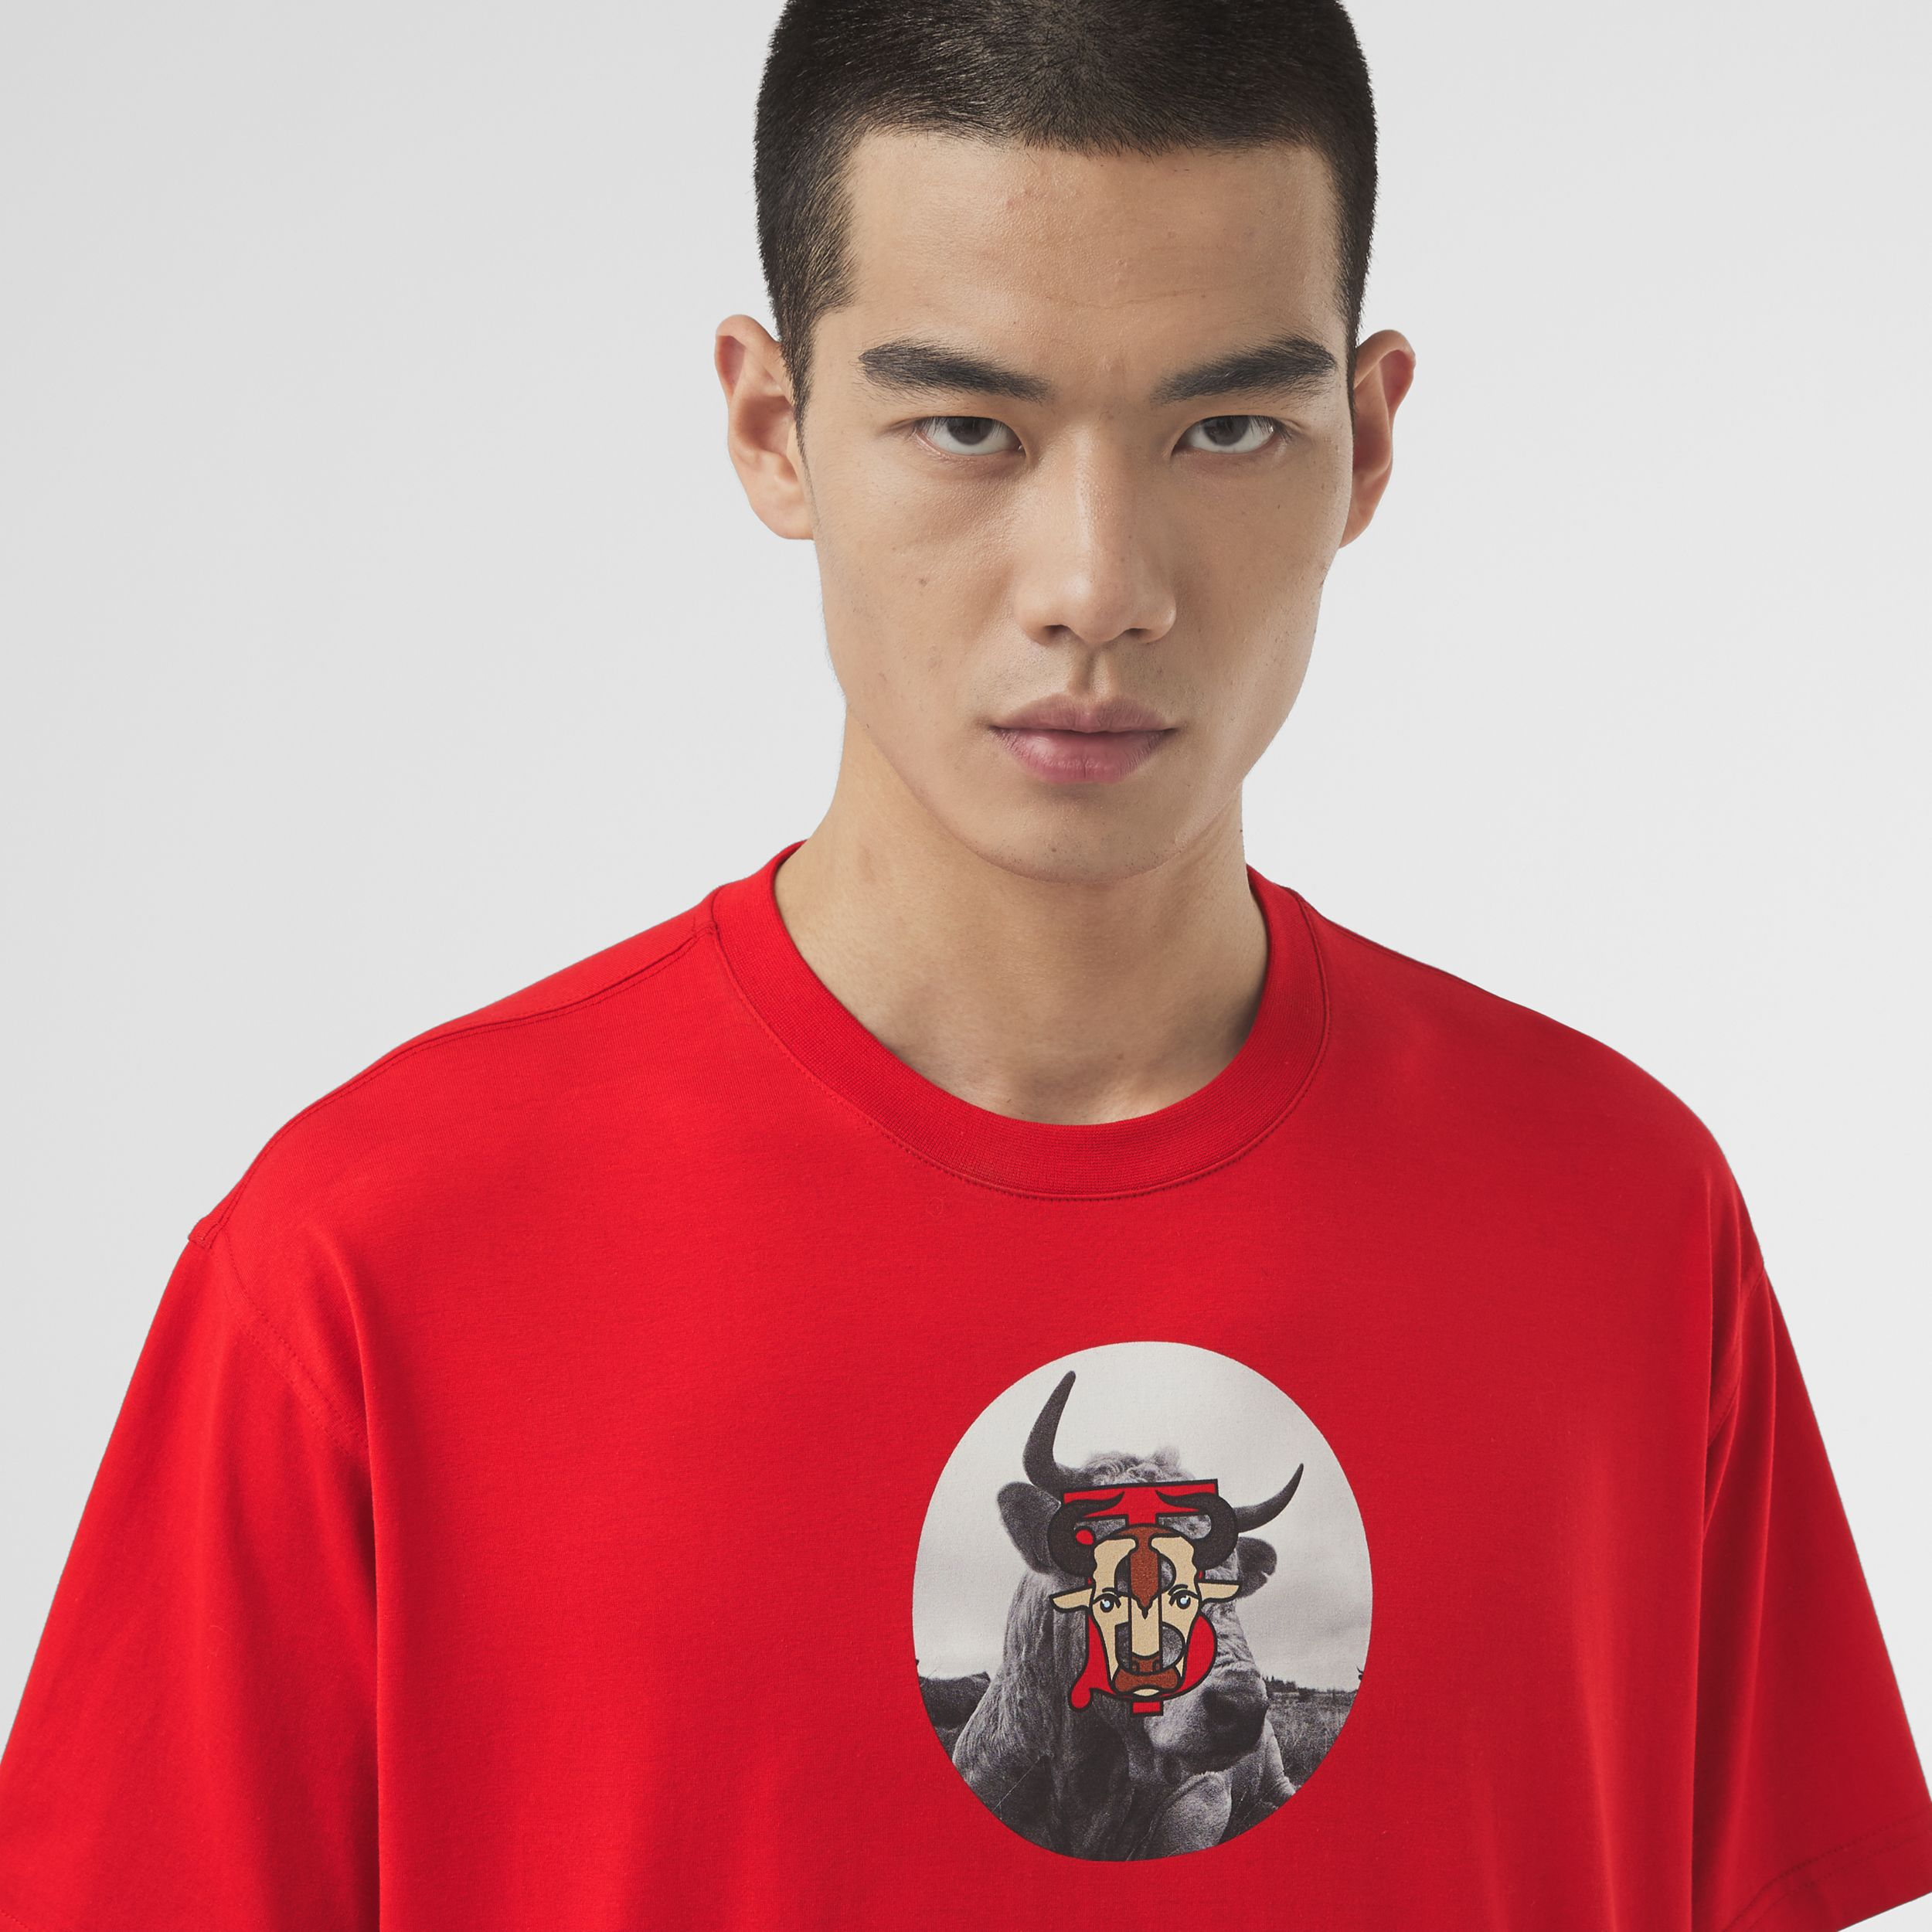 Montage Print Cotton T-shirt – Unisex in Bright Red | Burberry - 2